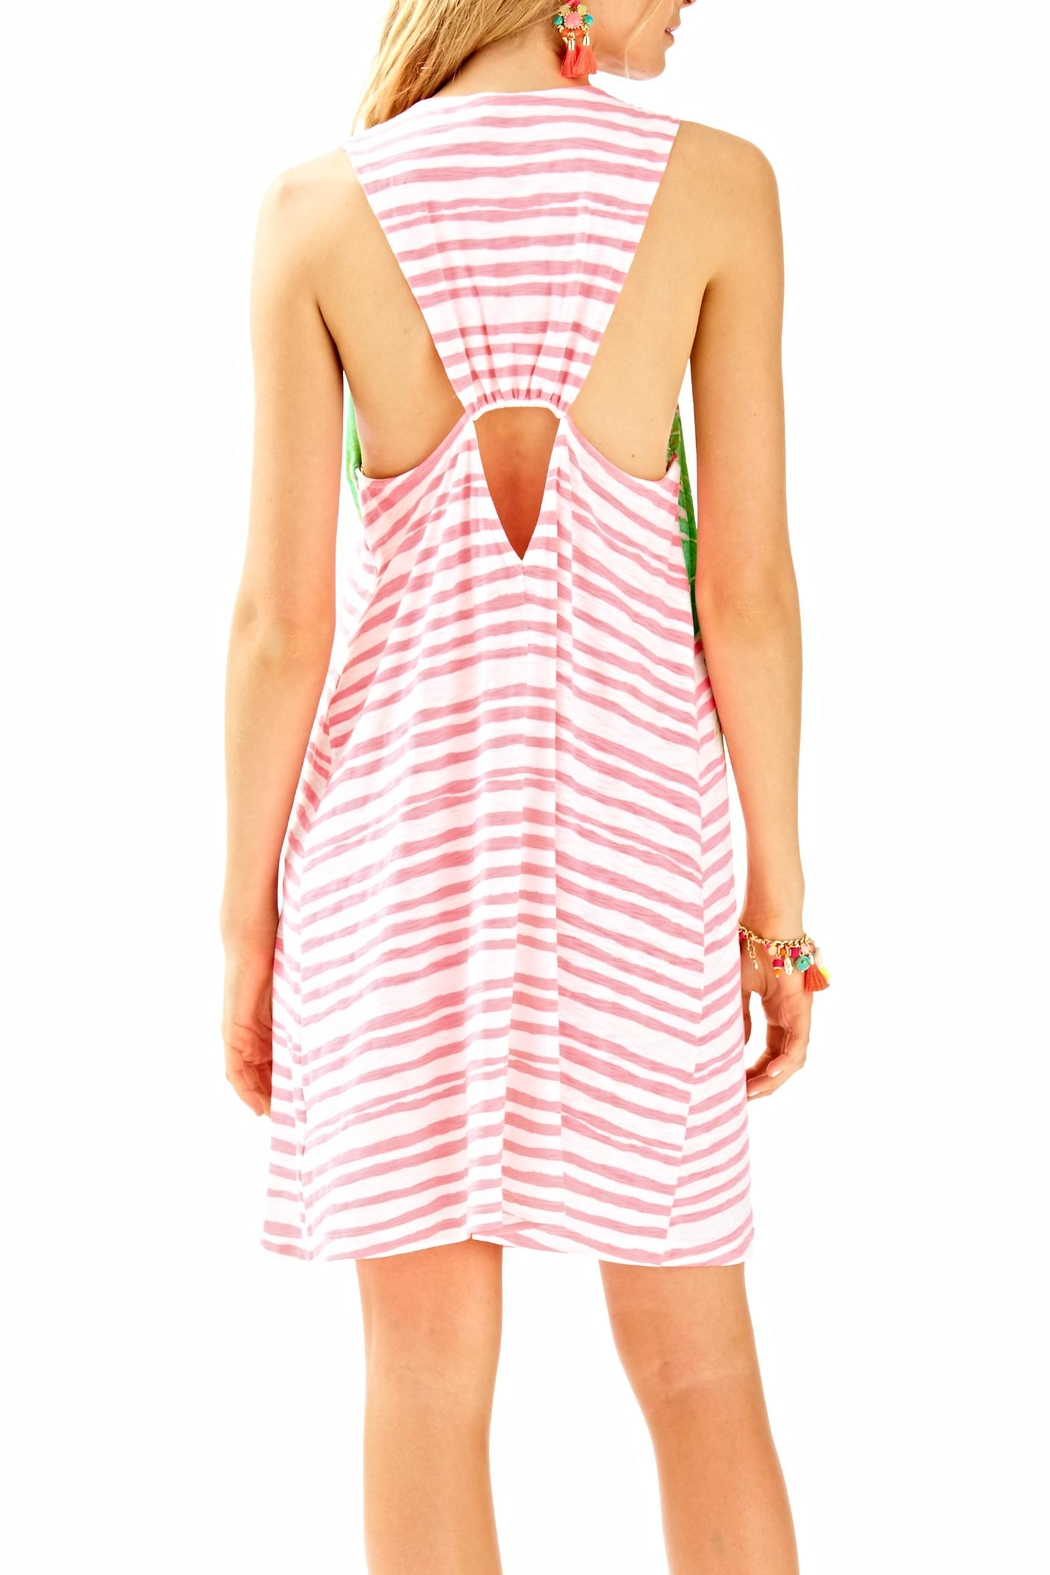 Lilly Pulitzer Striped Cover Up - Front Full Image